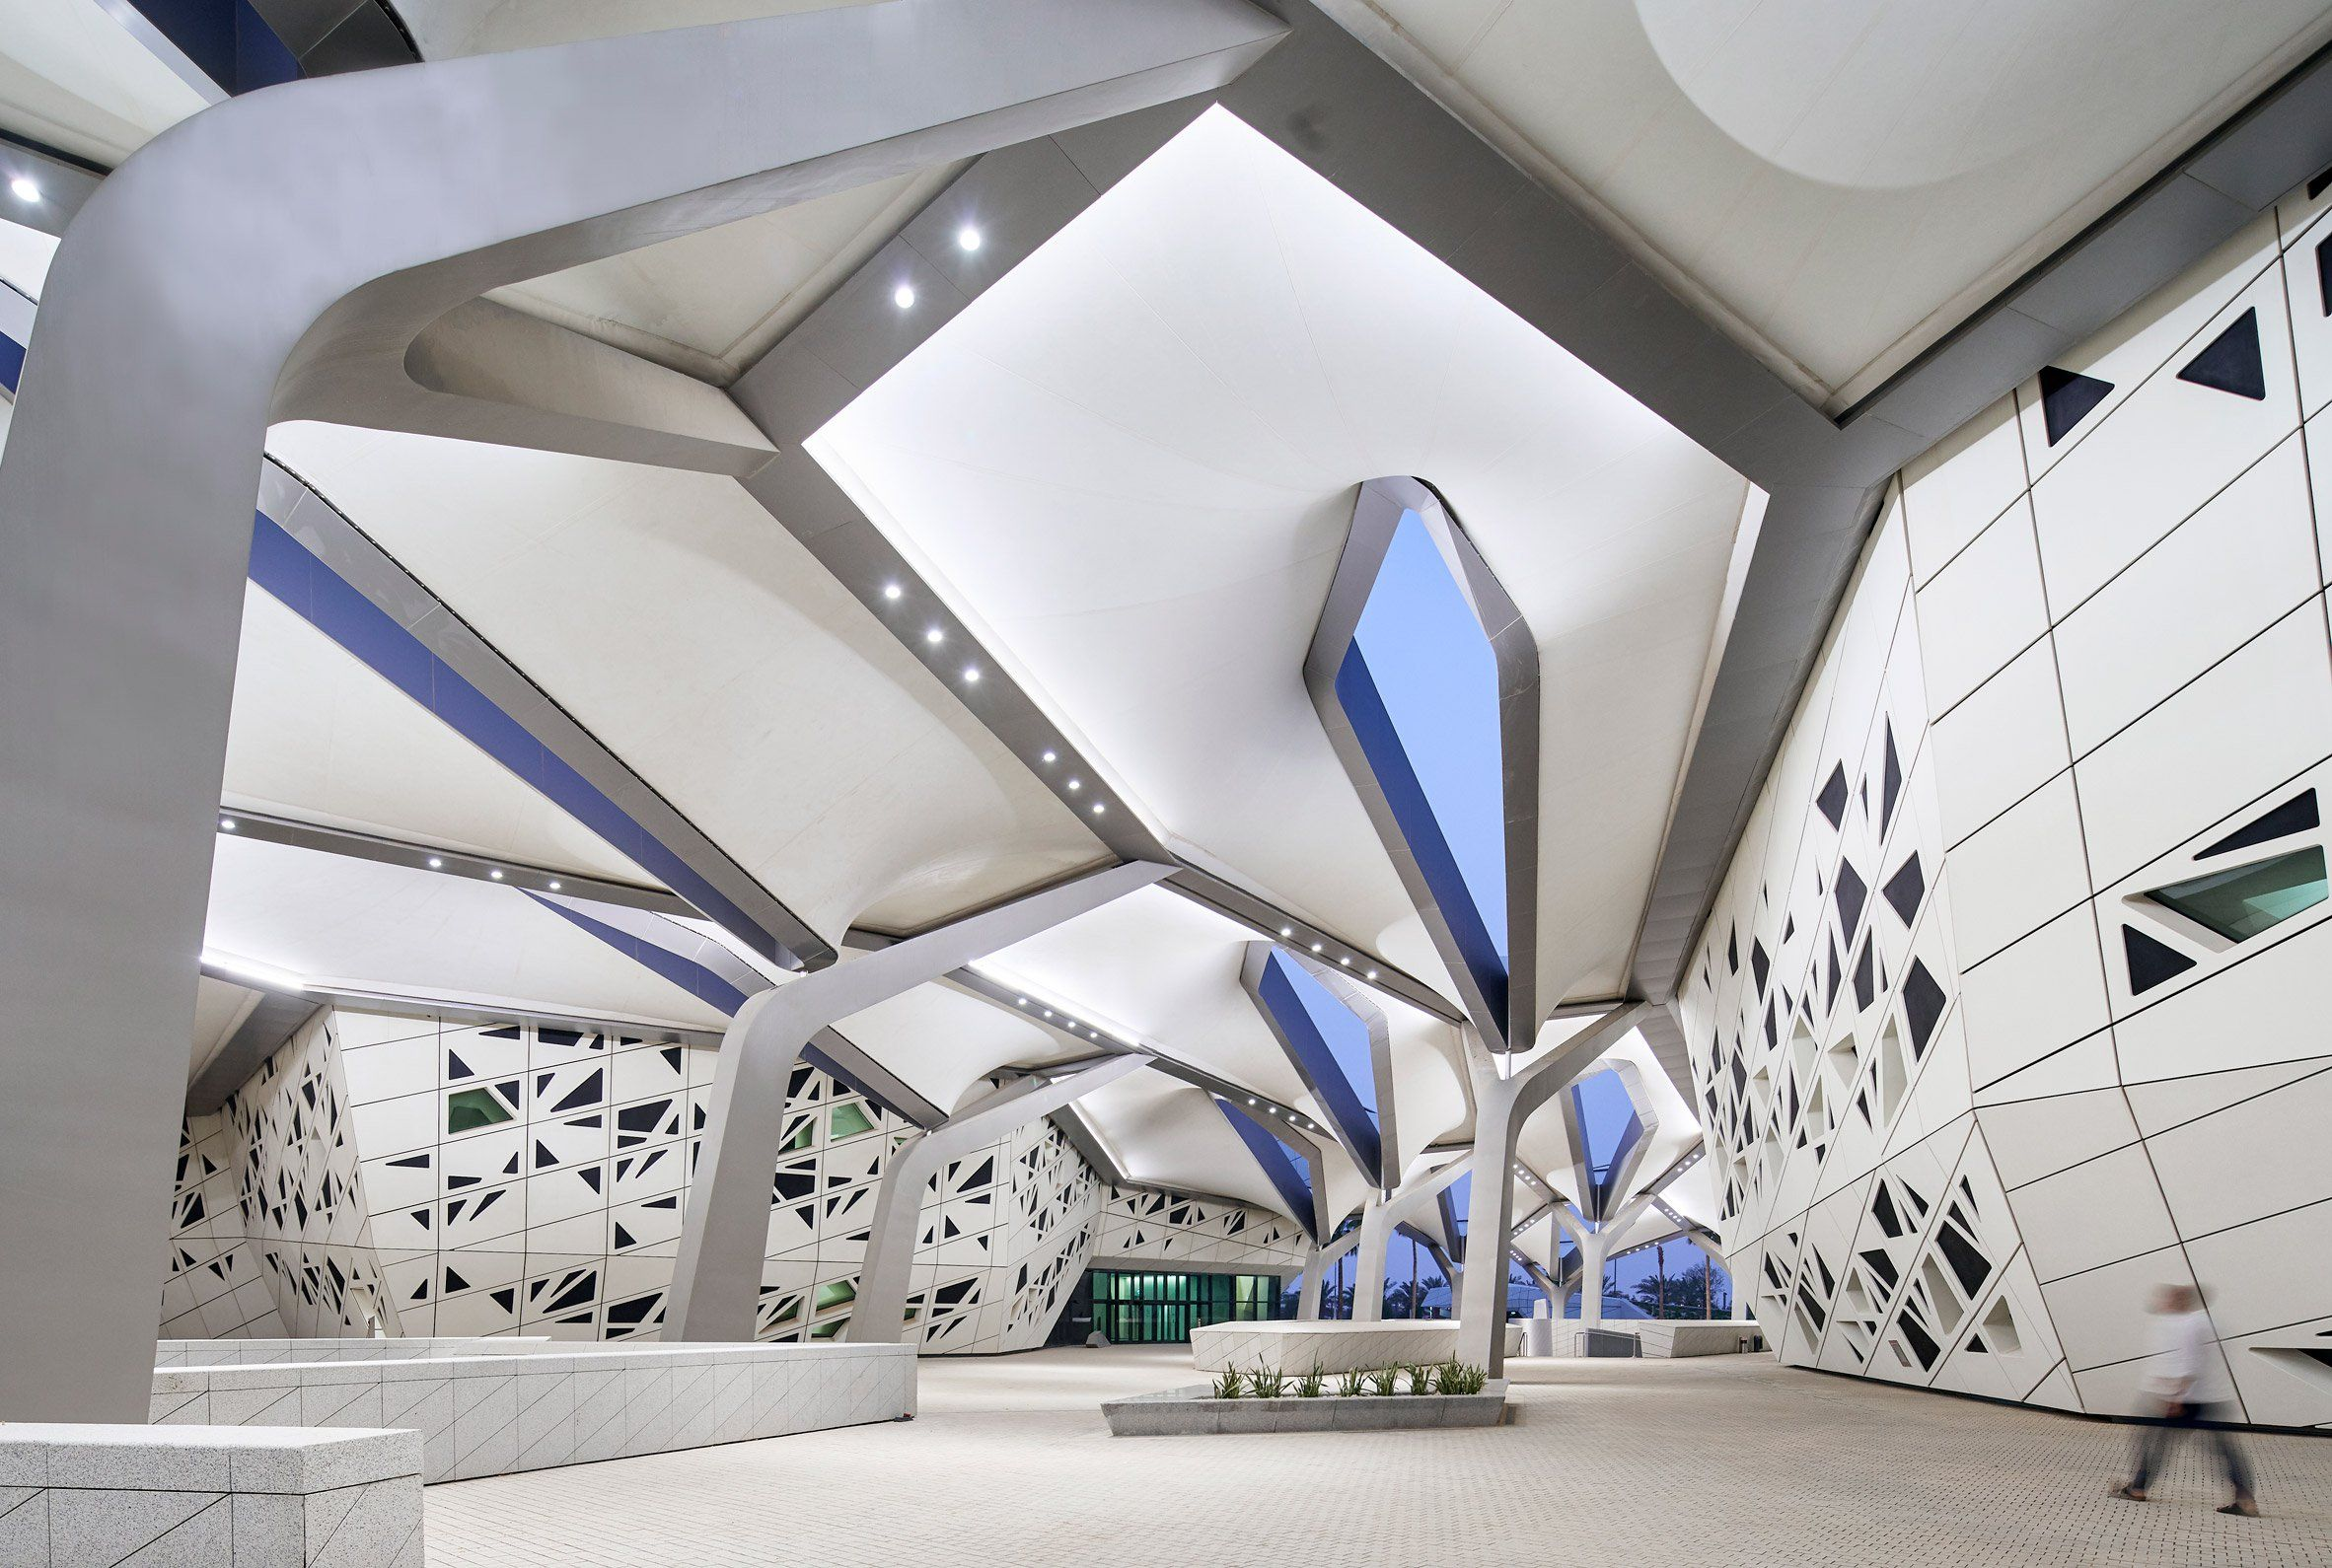 Stunning KAPSARC in Riyadh by Zaha Hadid Architects | Zaha hadid ...